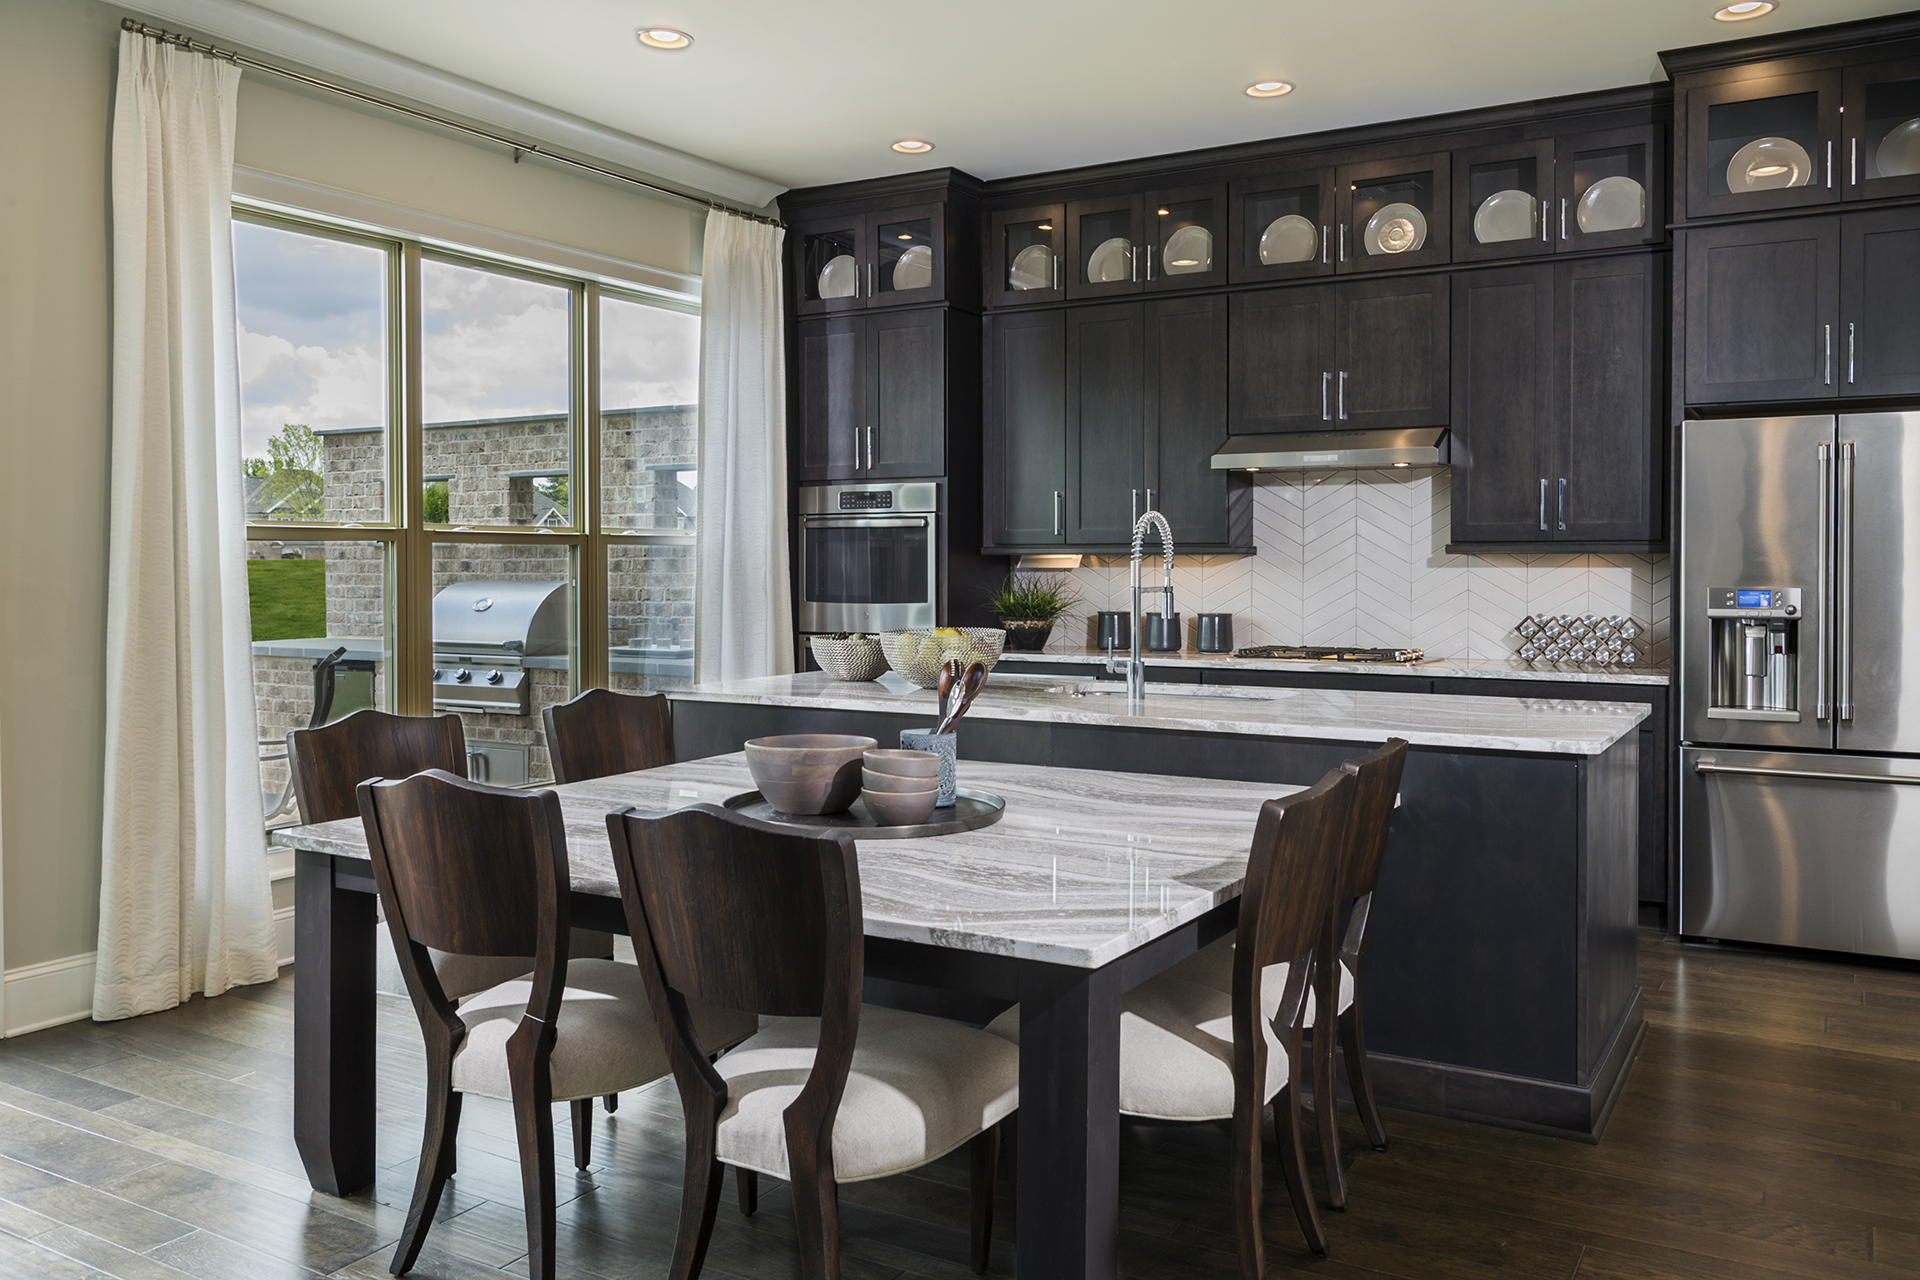 Reduced Pricing on New Johns Creek Homes from The Providence Group